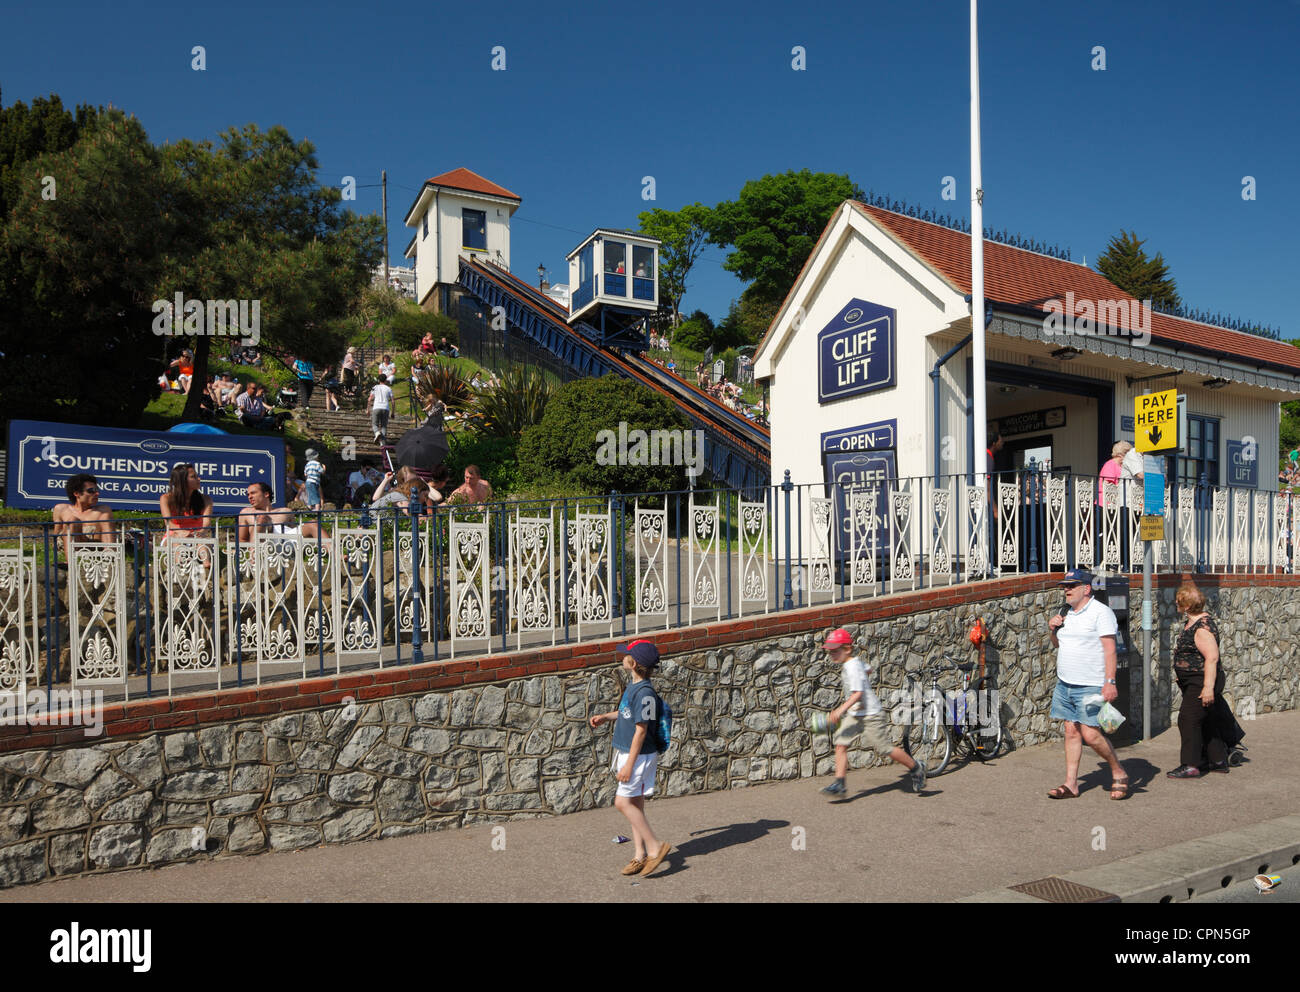 Southend on sea, Cliff lift. - Stock Image